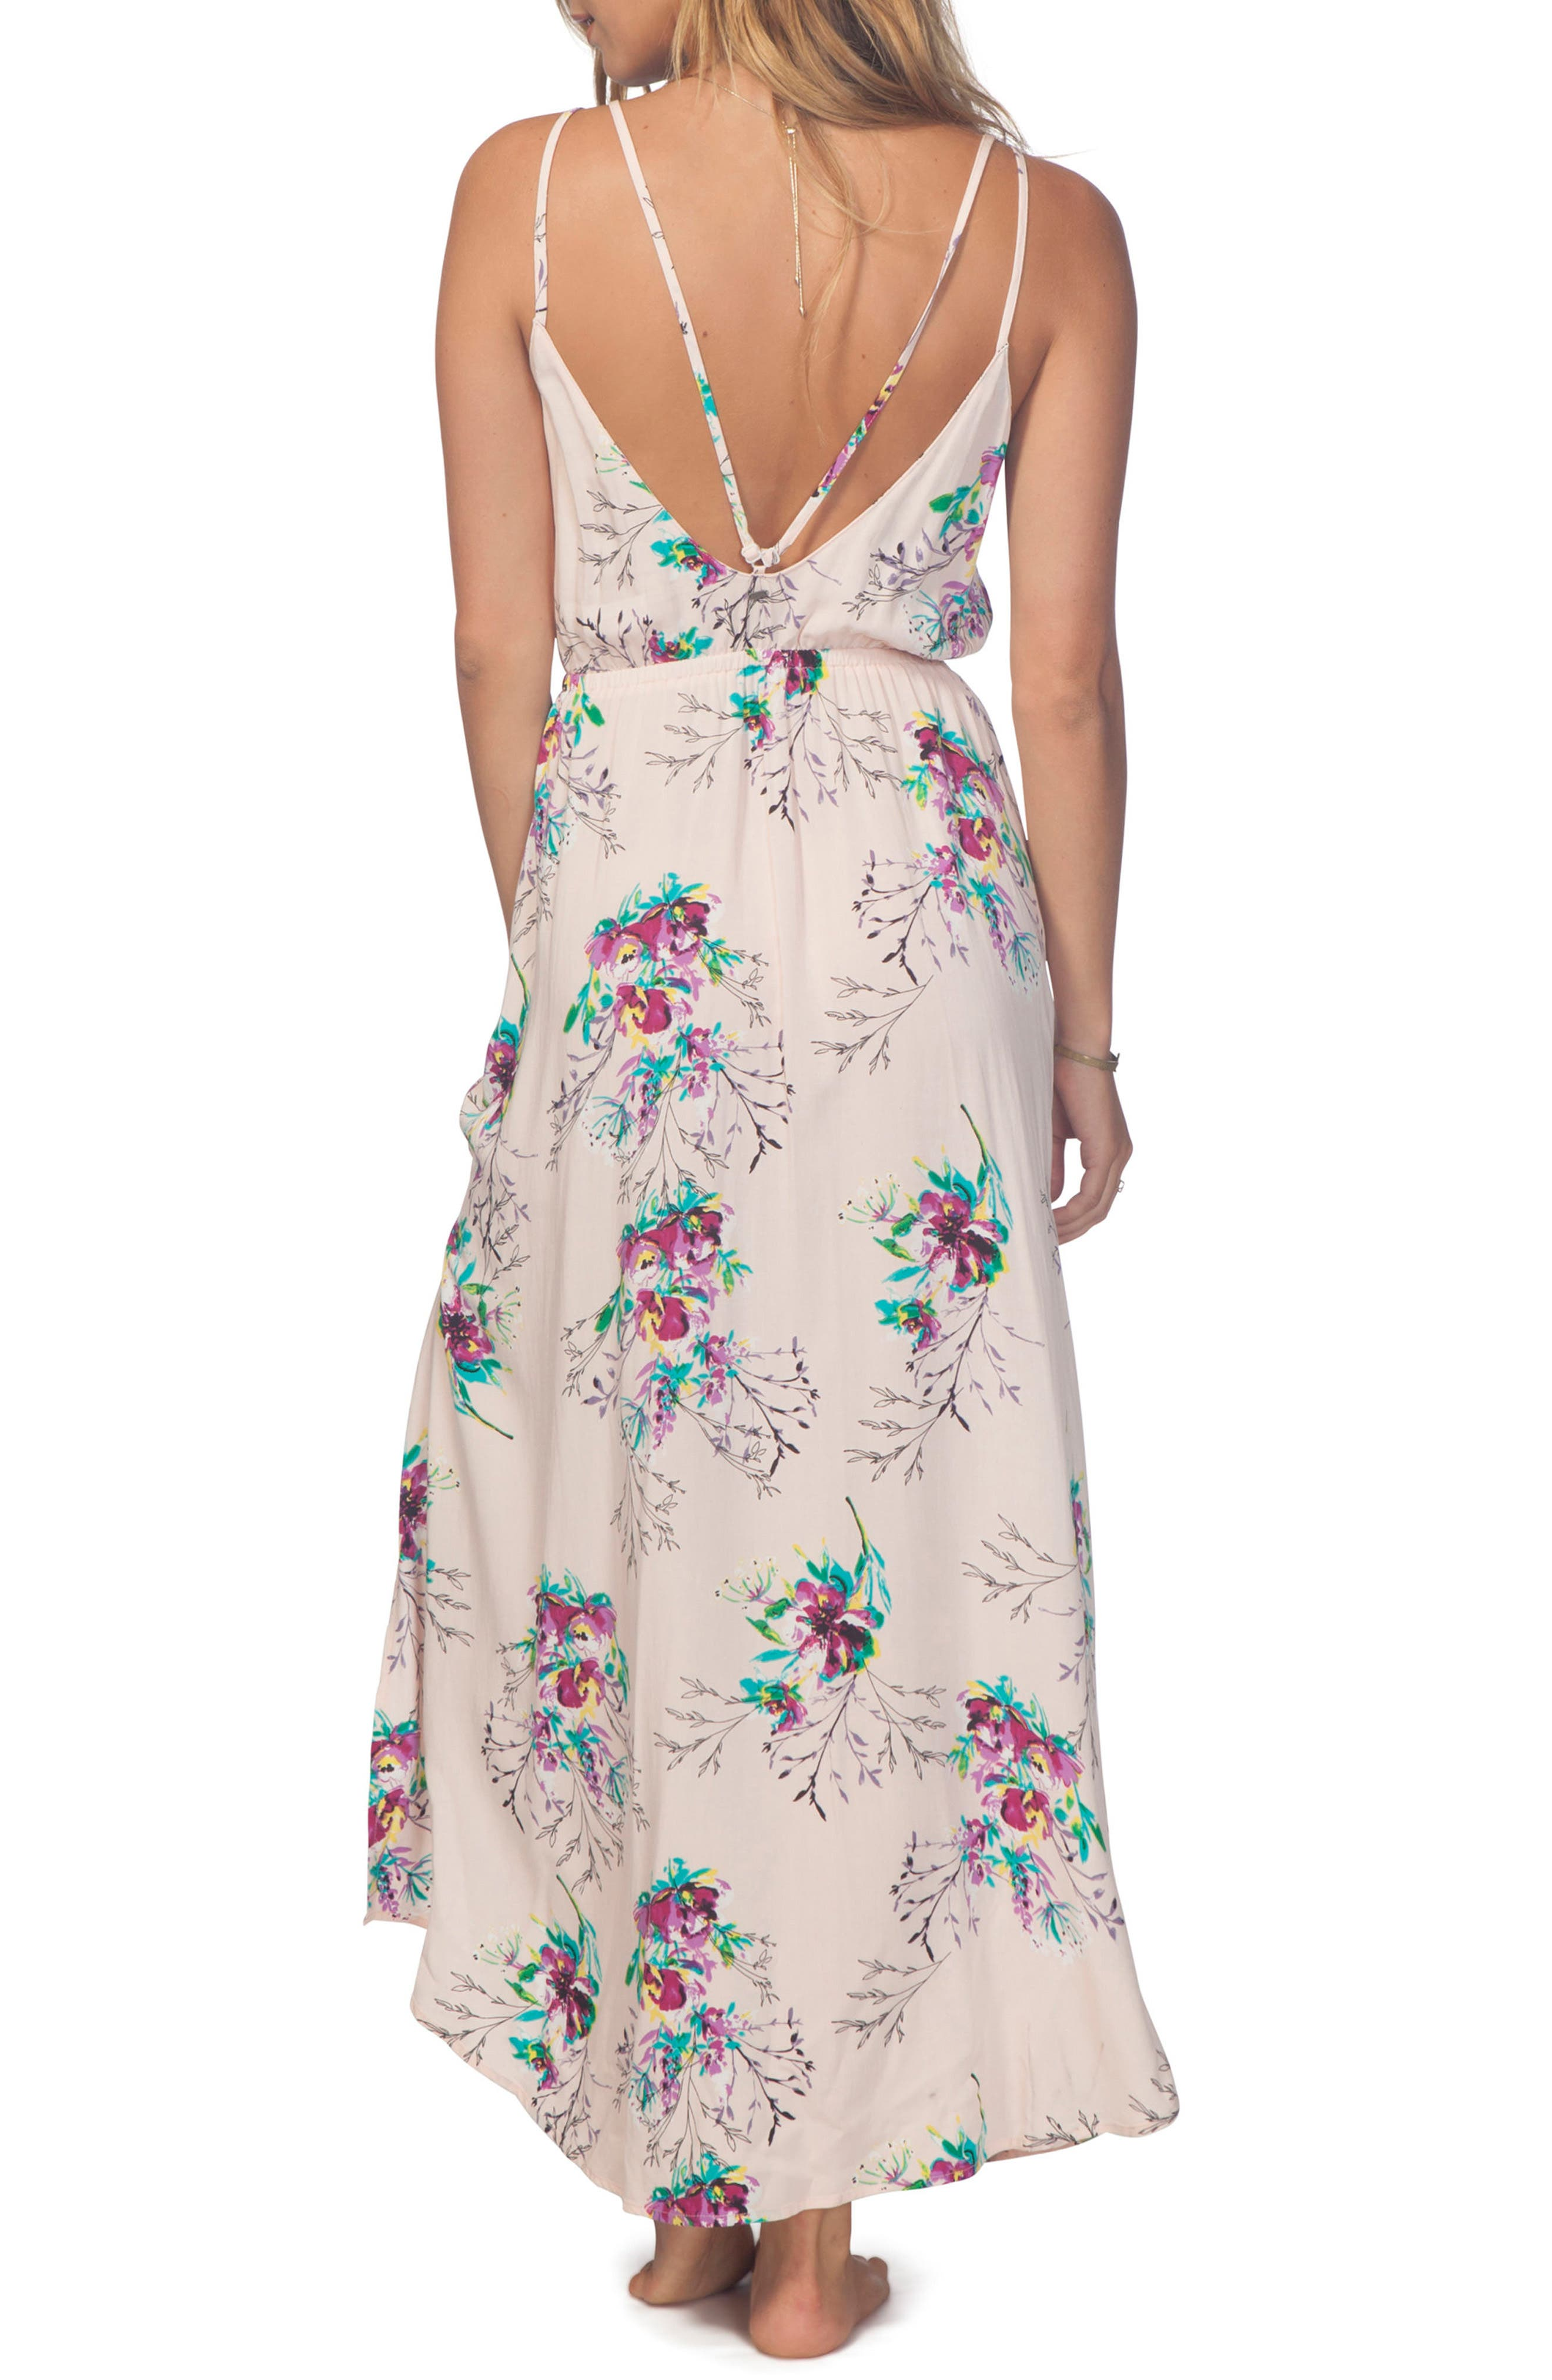 Sweet Nothing Maxi Dress,                             Alternate thumbnail 2, color,                             900